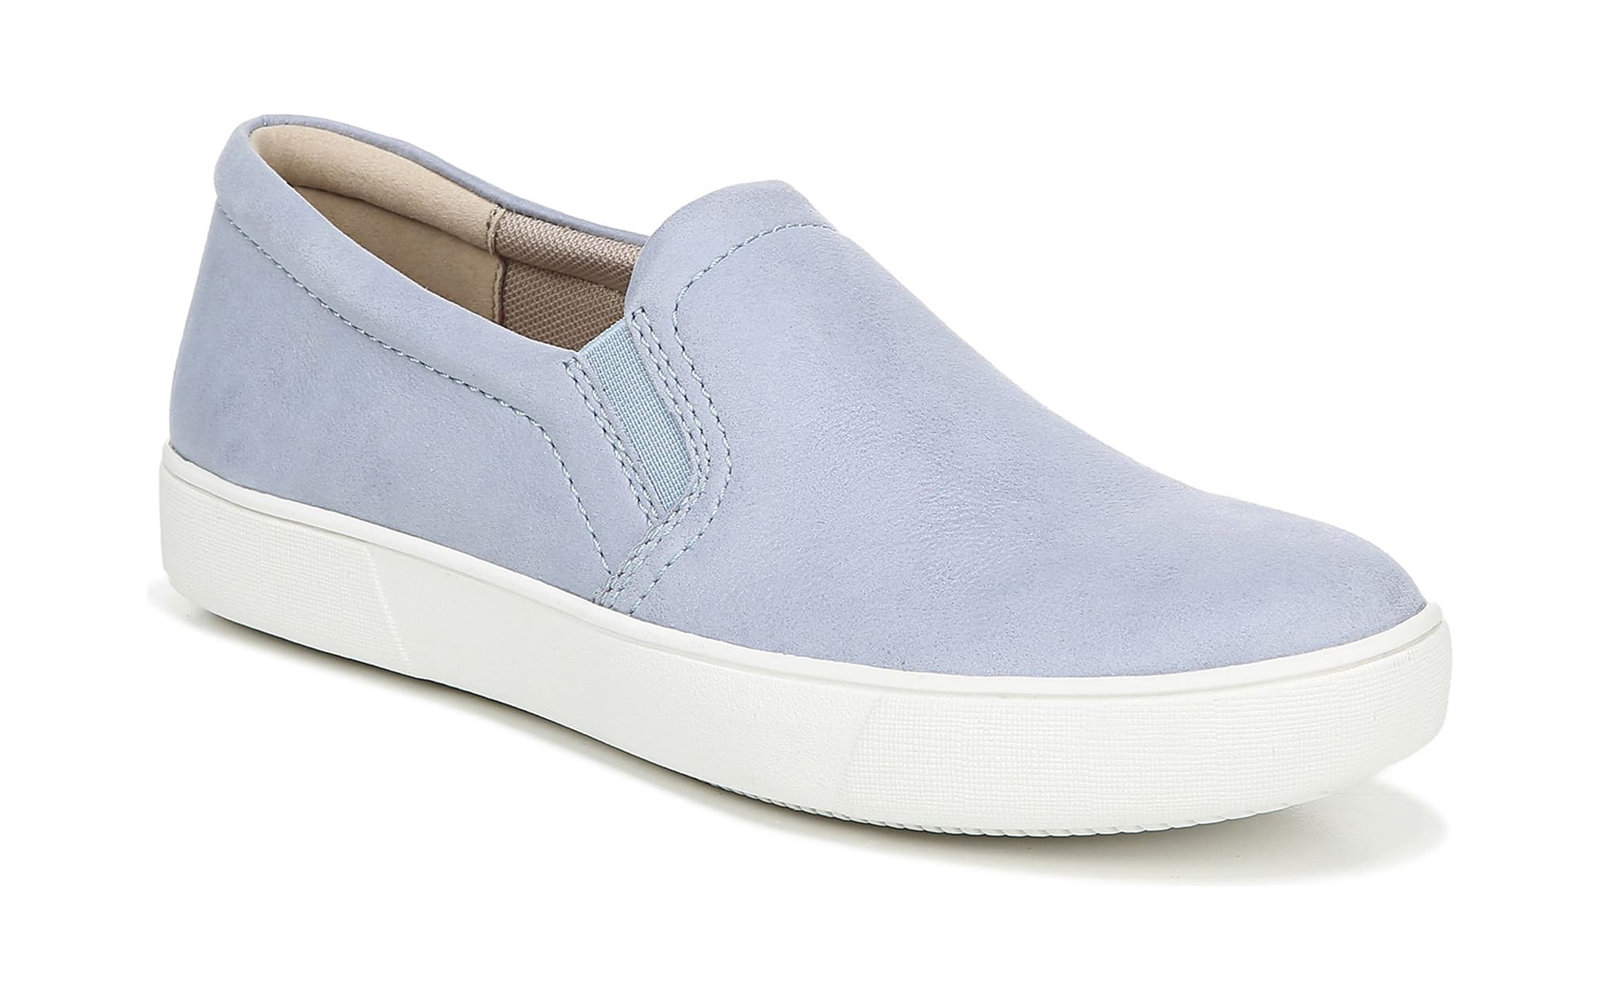 Naturalizer 'Marianne' Slip-on Sneakers